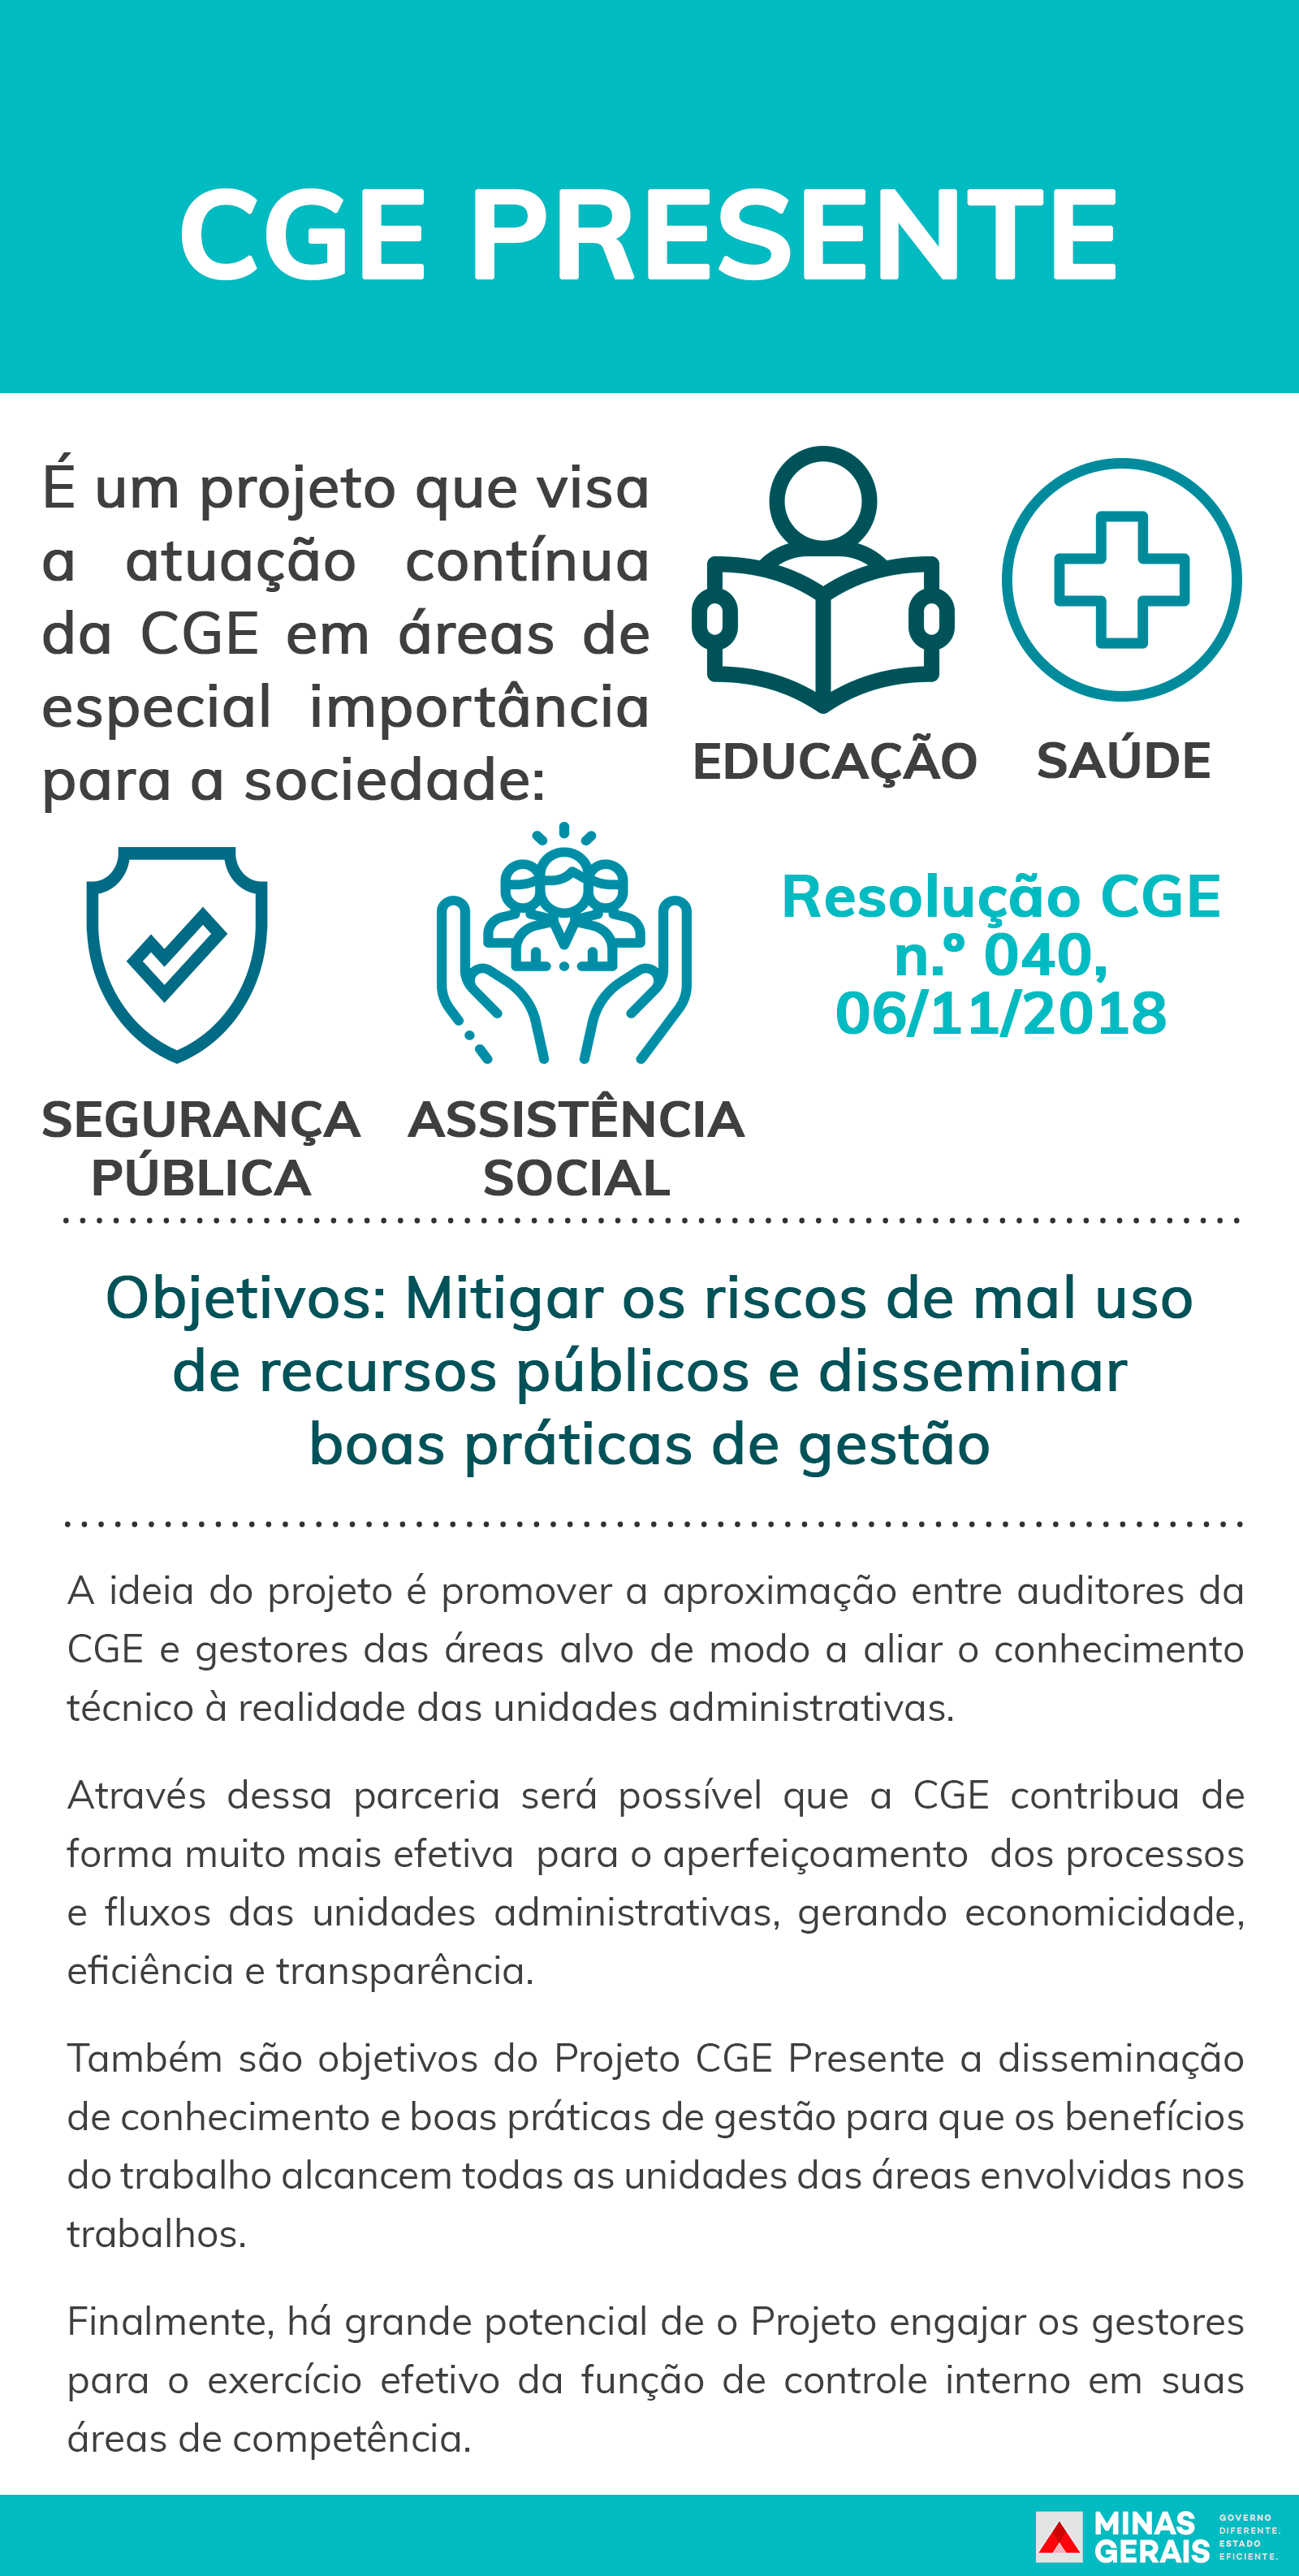 CGE-Presente_info.png